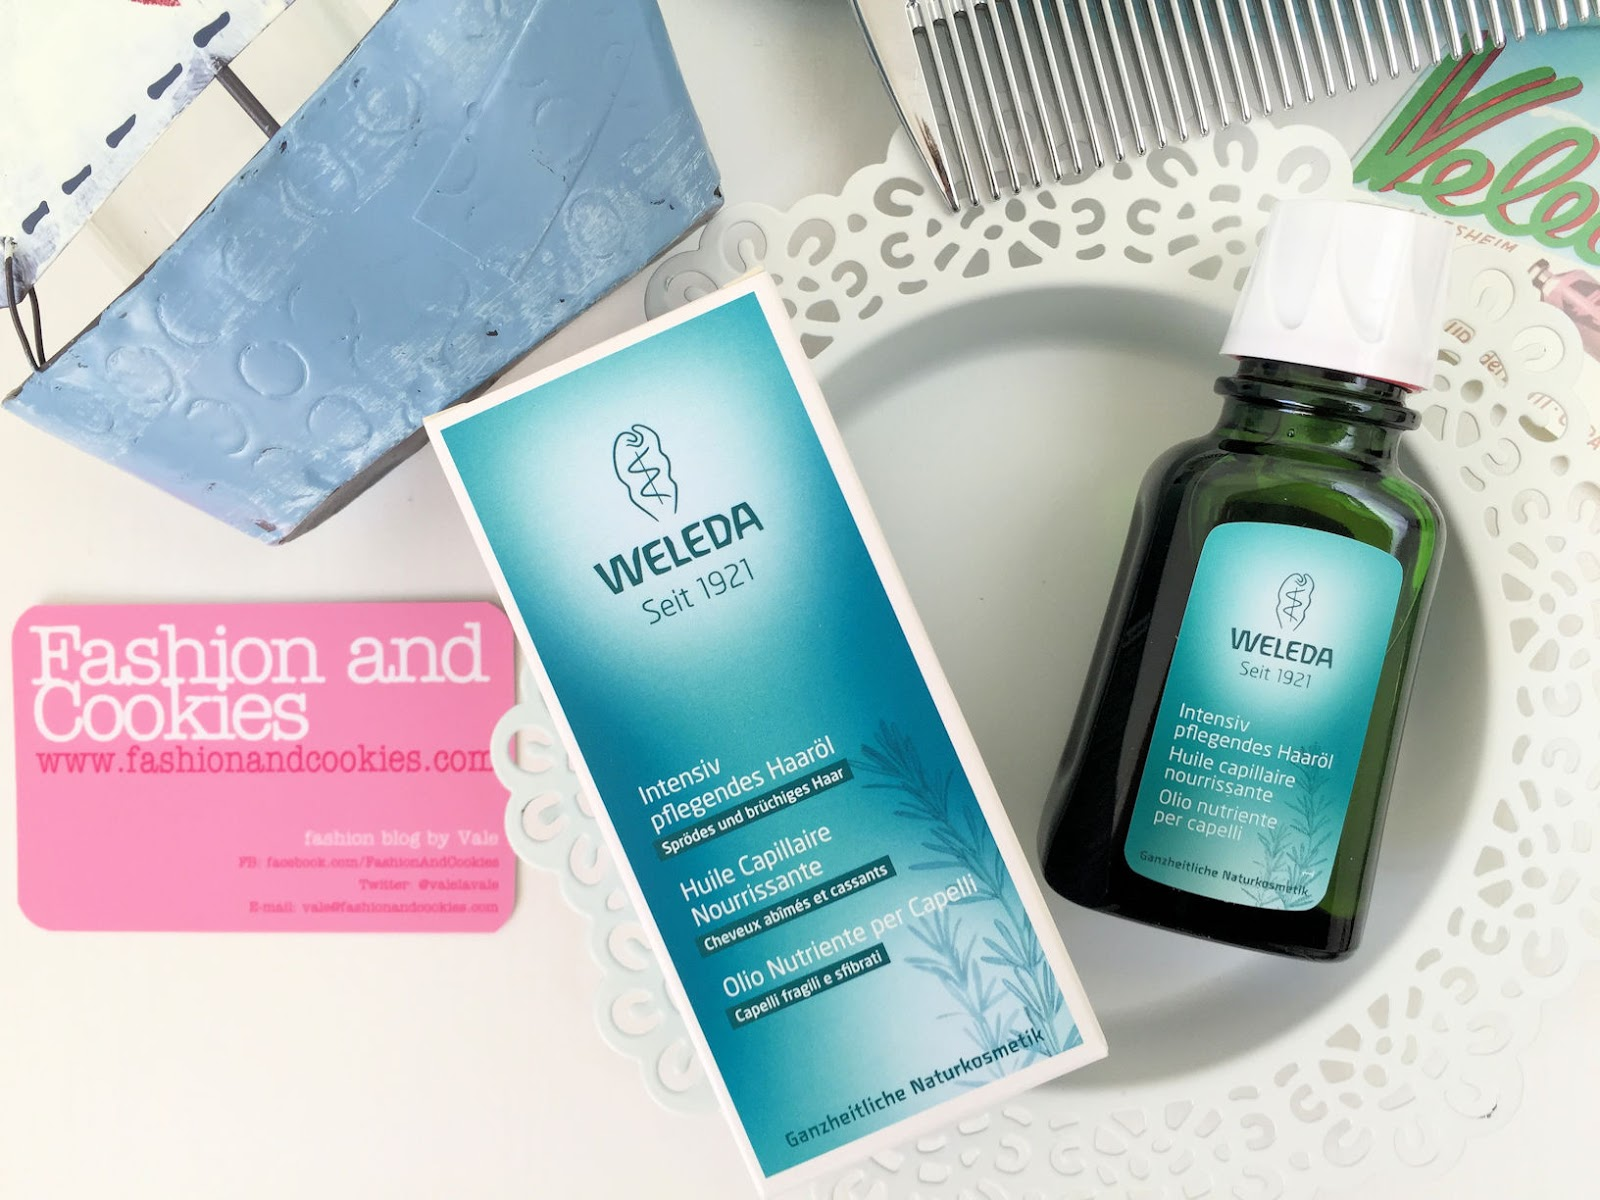 Weleda olio nutriente per capelli Fashion and Cookies beauty blog, beauty blogger